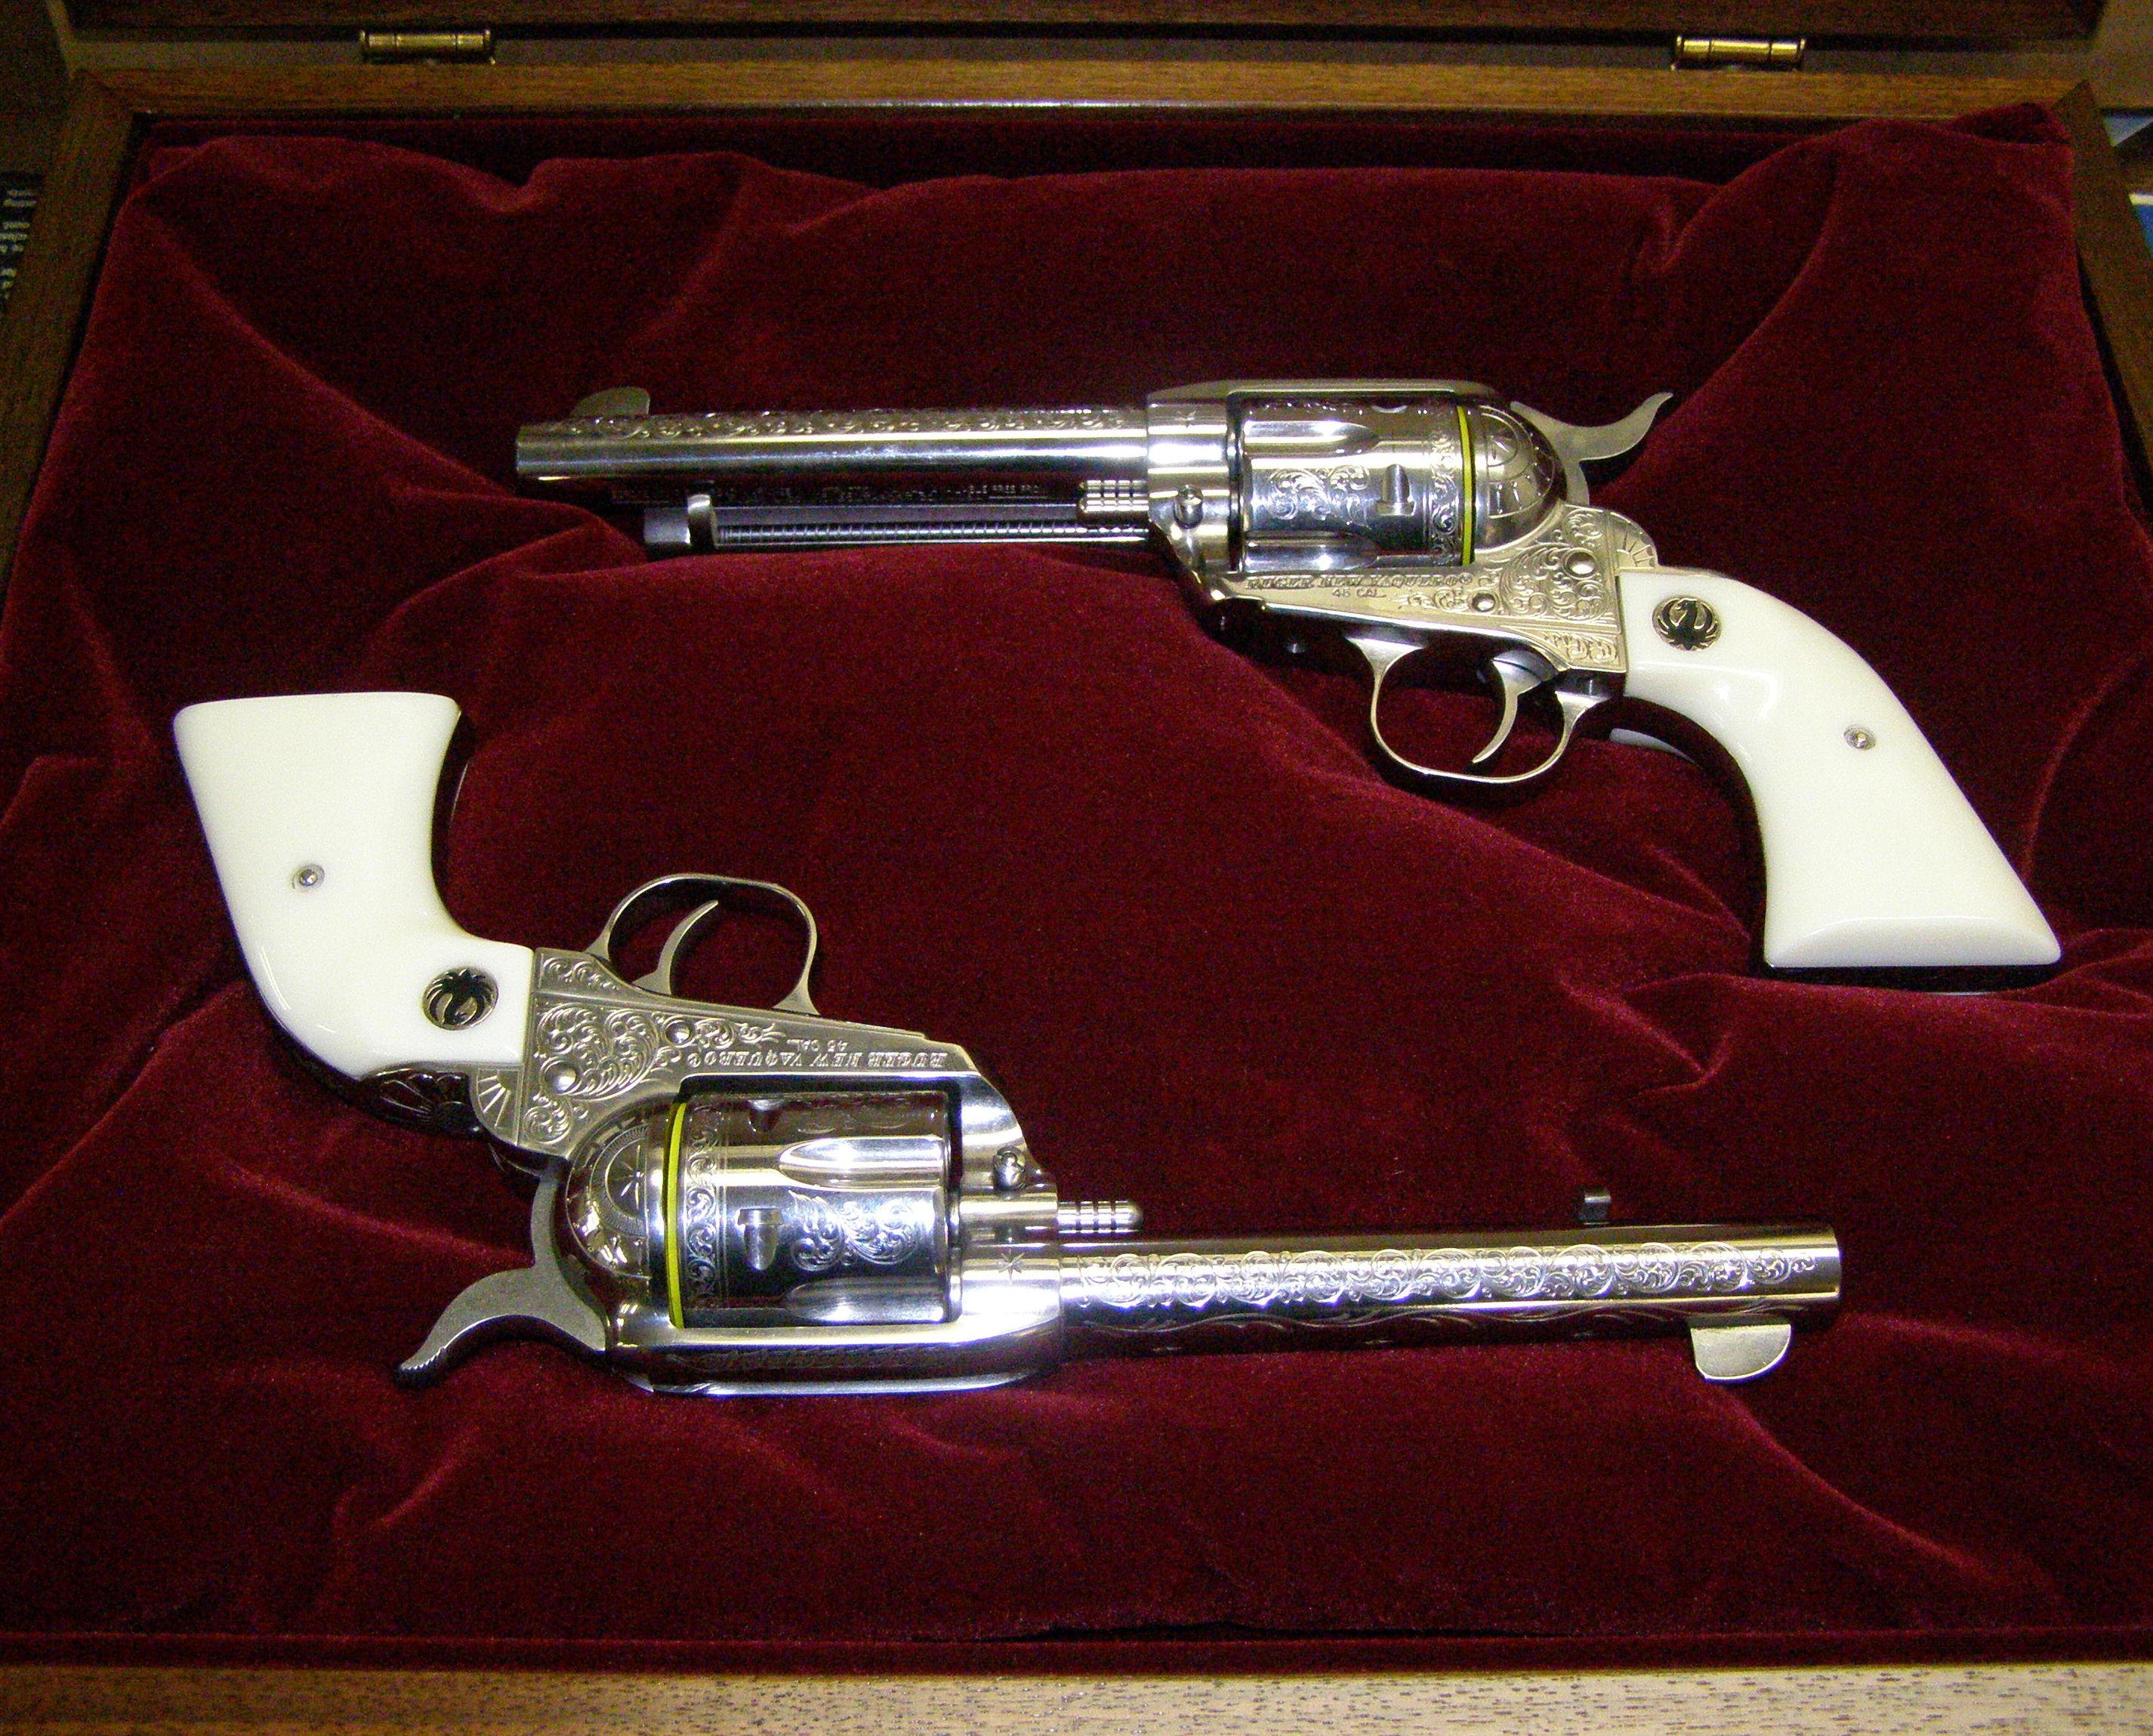 Matched Pair of Engraved Vaqueros  Guns > Pistols > Ruger Single Action Revolvers > Cowboy Action